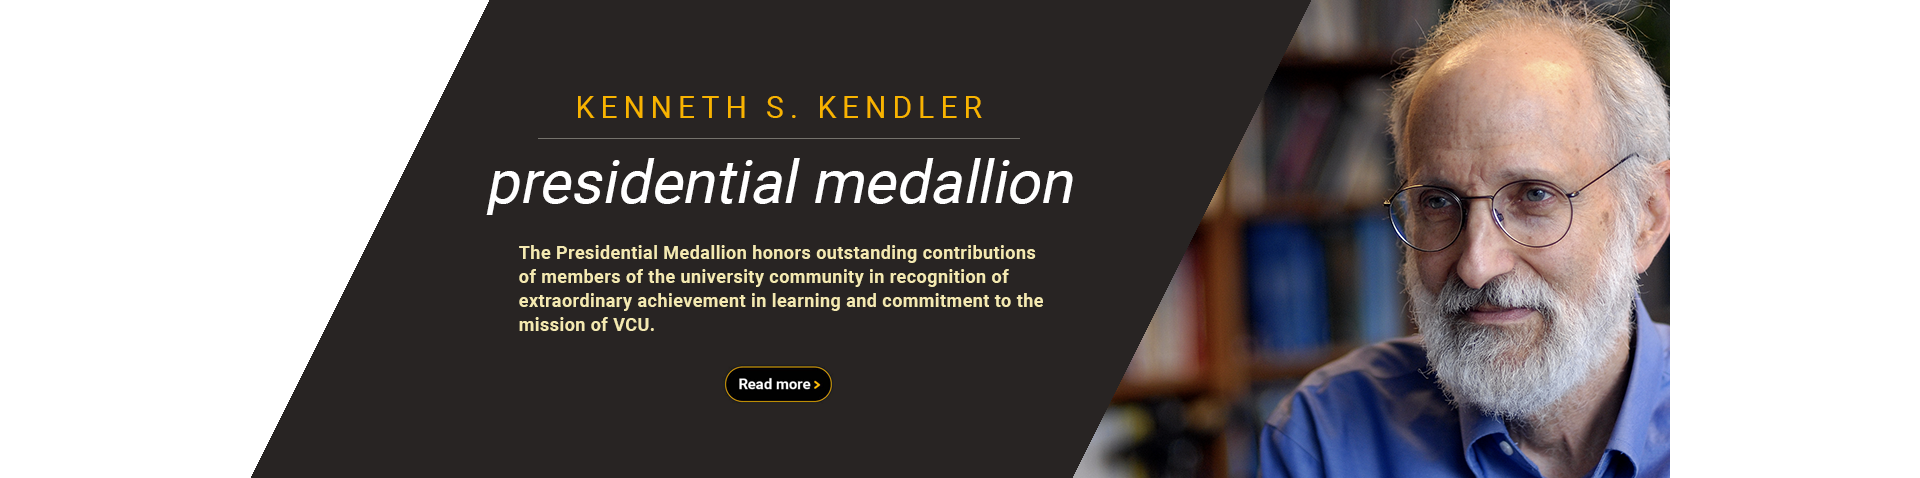 Kenneth S. Kendler honored with the Presidential Medallion